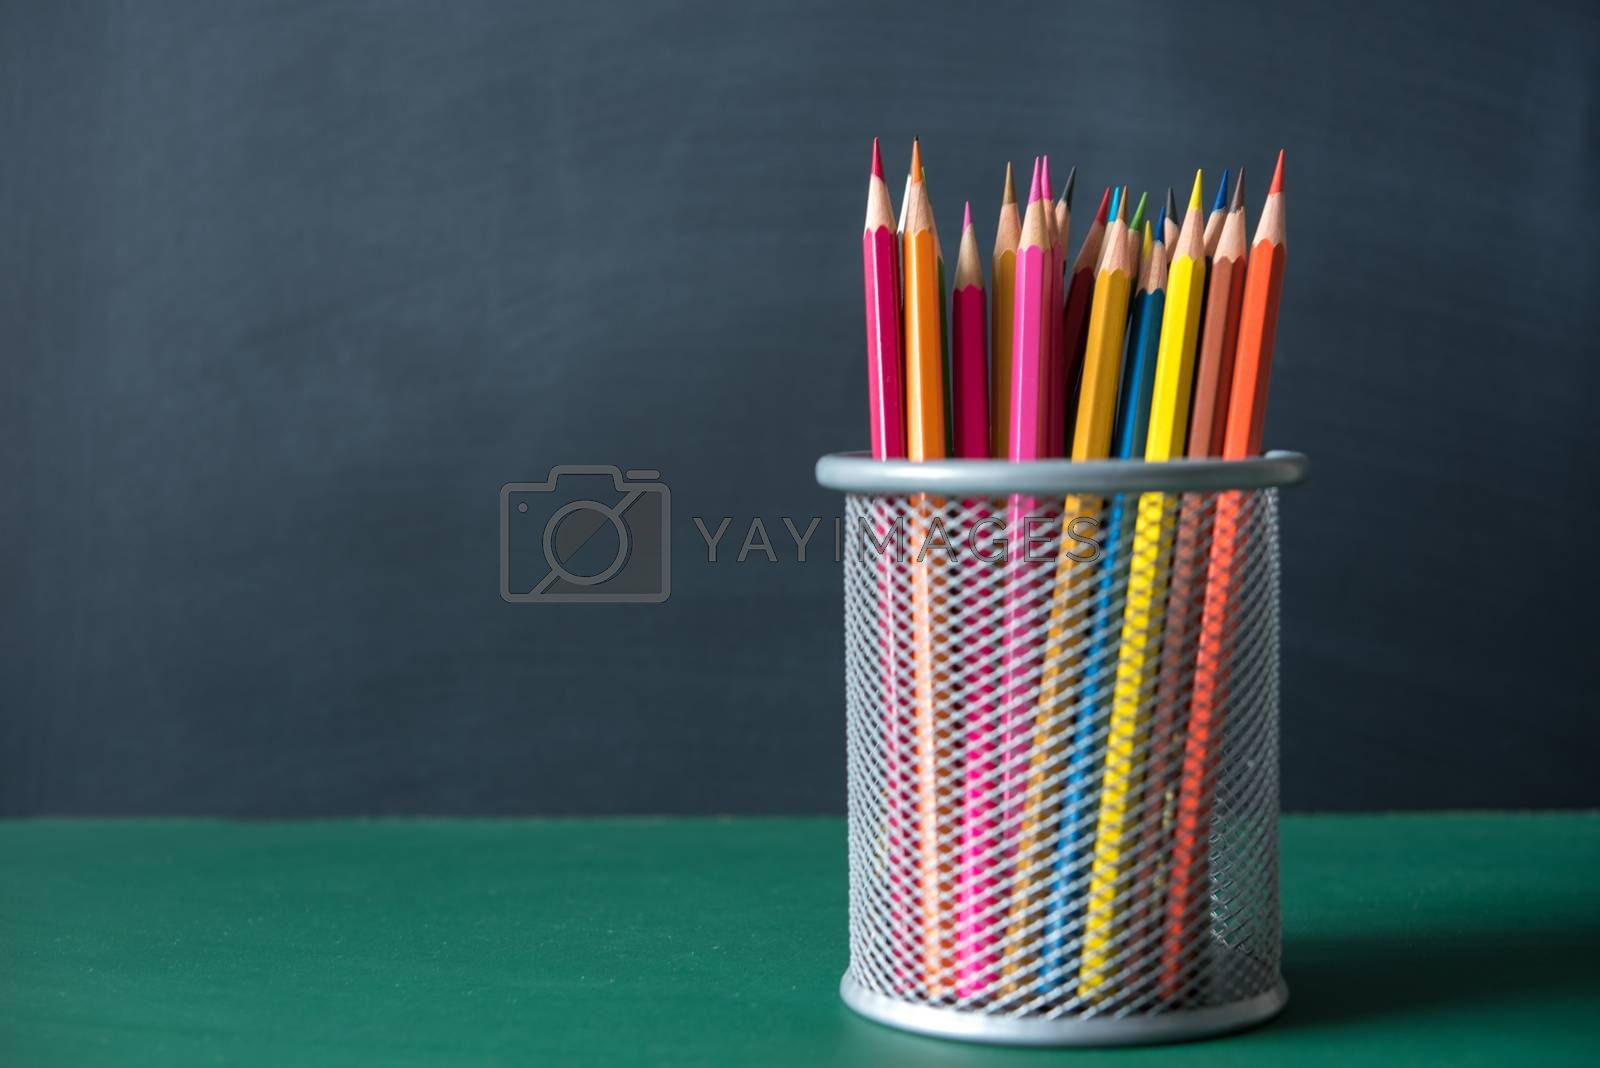 multicolor pencil in a box on black and green chalkboard backgro by Lerttanapunyaporn